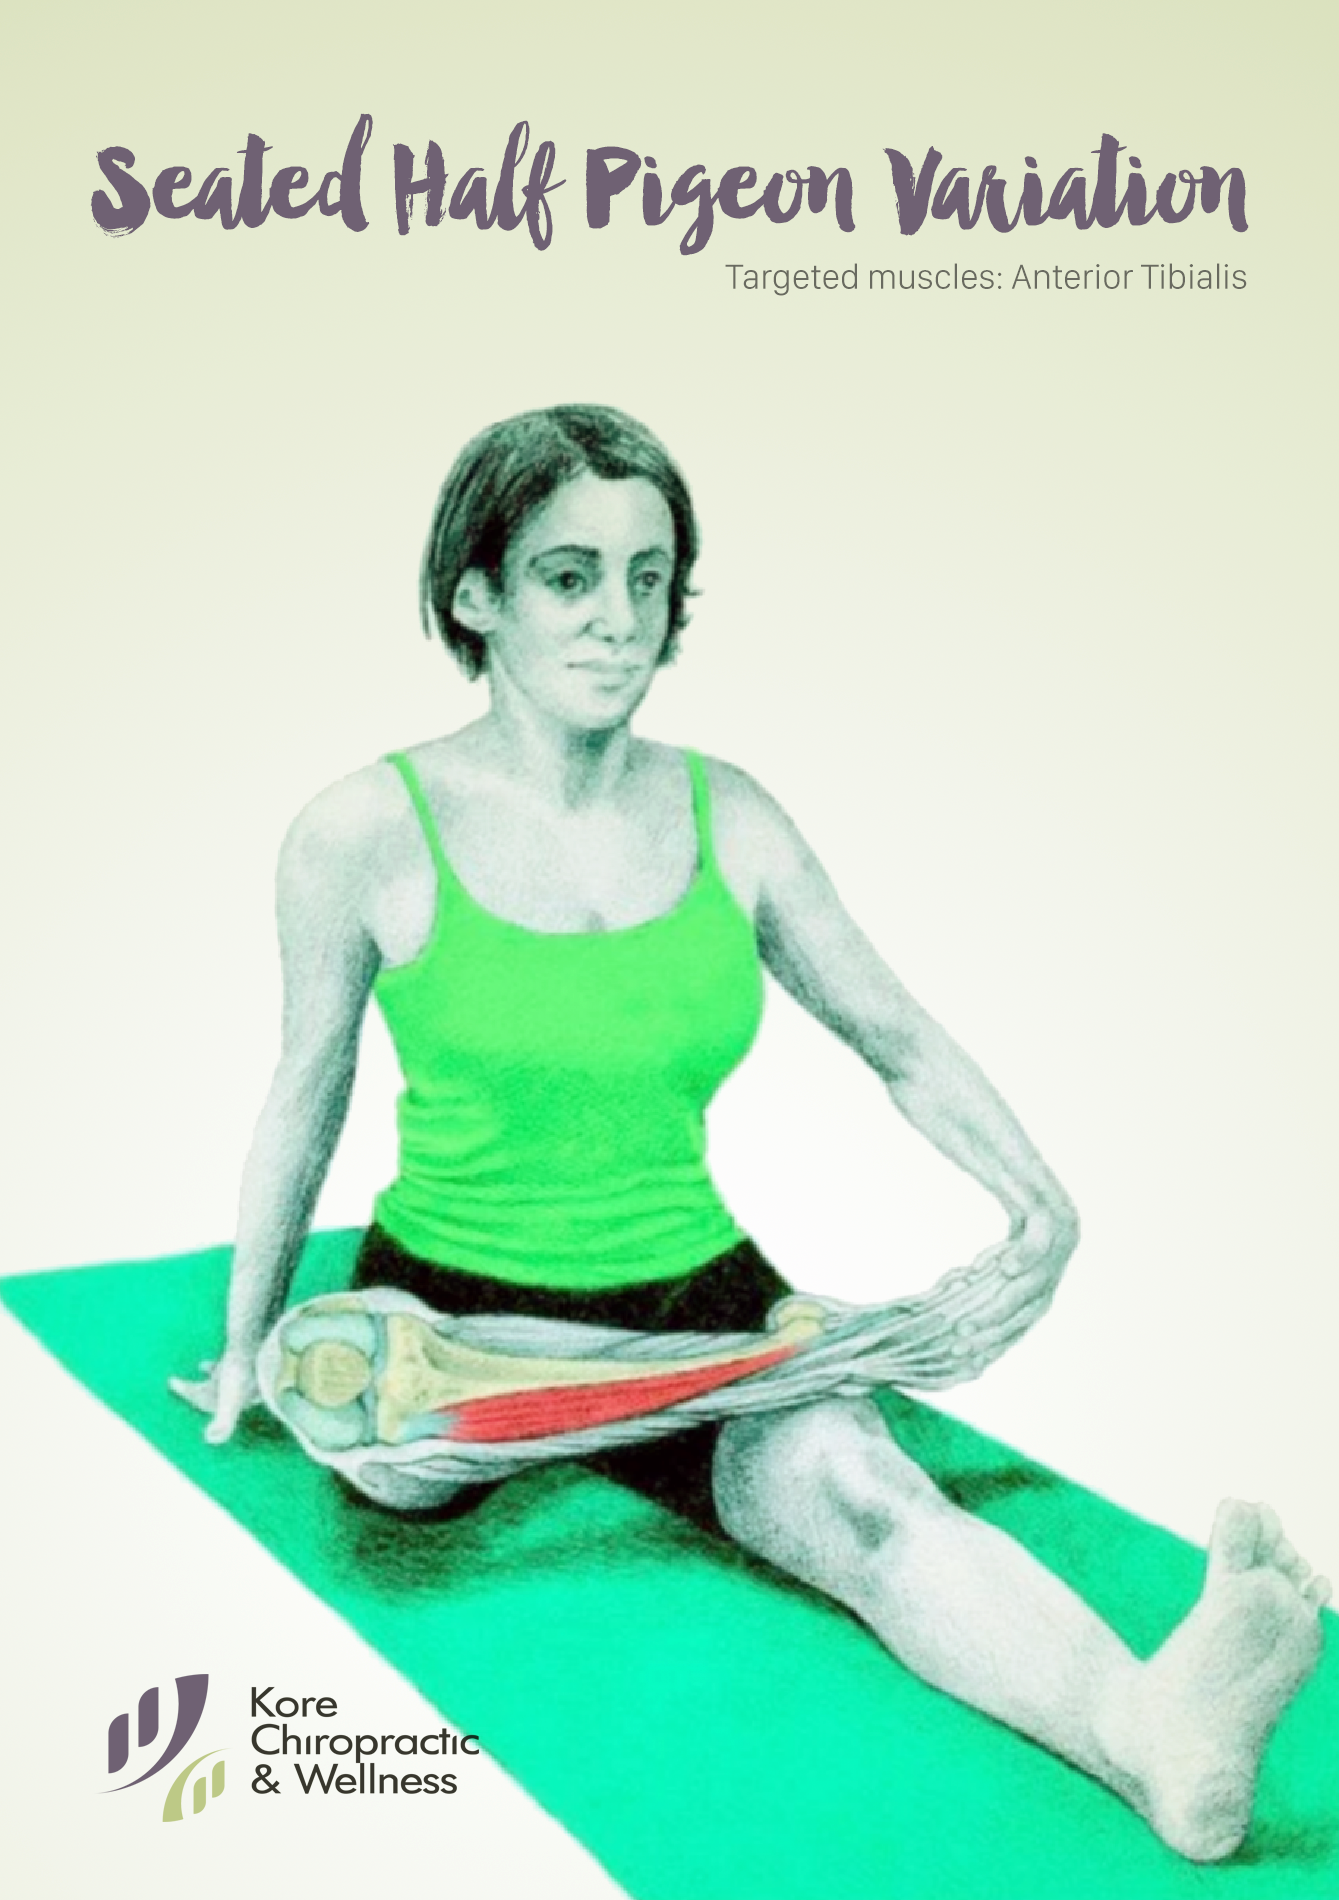 Seated Half Pigeon Variation  Targeted muscles: Anterior Tibialis.  Start in a seated position, with feet in front of you. Place one hand behind you, and rotate your hip placing one foot above the knee. Slowly lean forward, increasing the #stretch on your hip, and begin the movement by hinging at the hips.  #stretches #stretching #rehabilitation